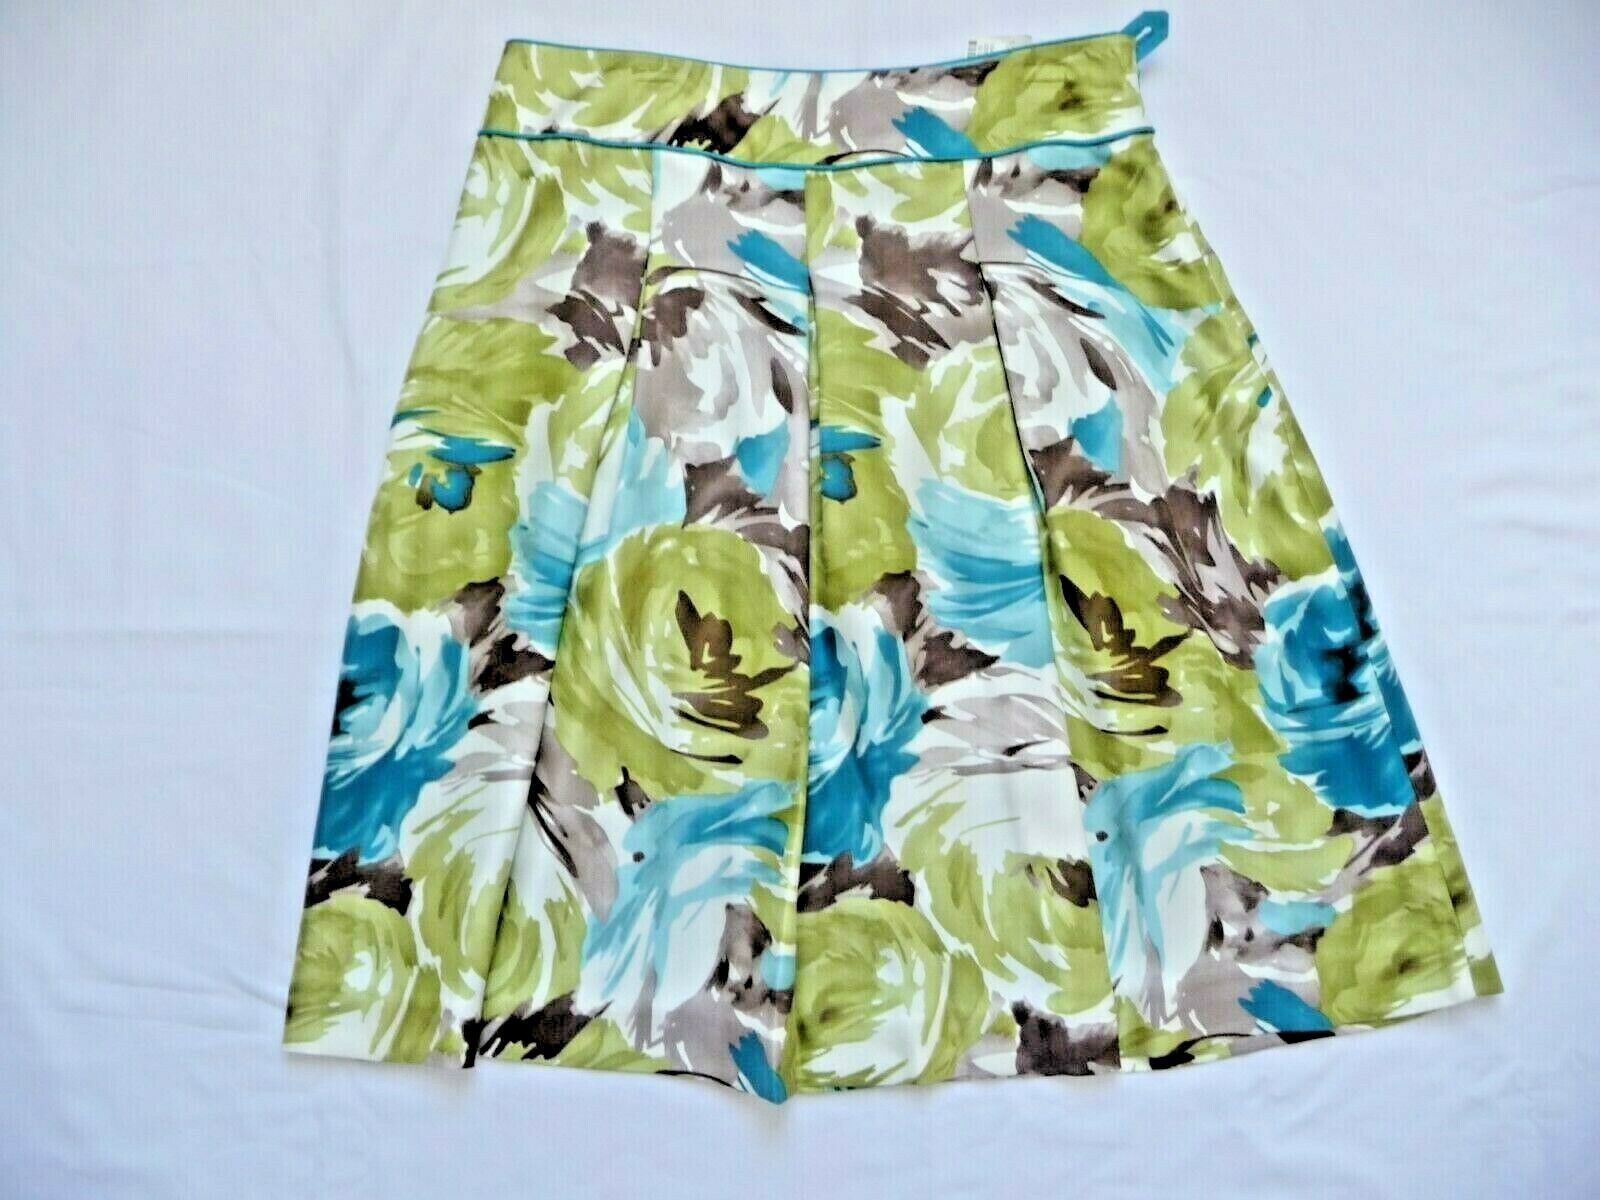 Talbots NWT 4P Skirt Muted Florals 100% Silk Pleated Lined  Turquoise Trim 23